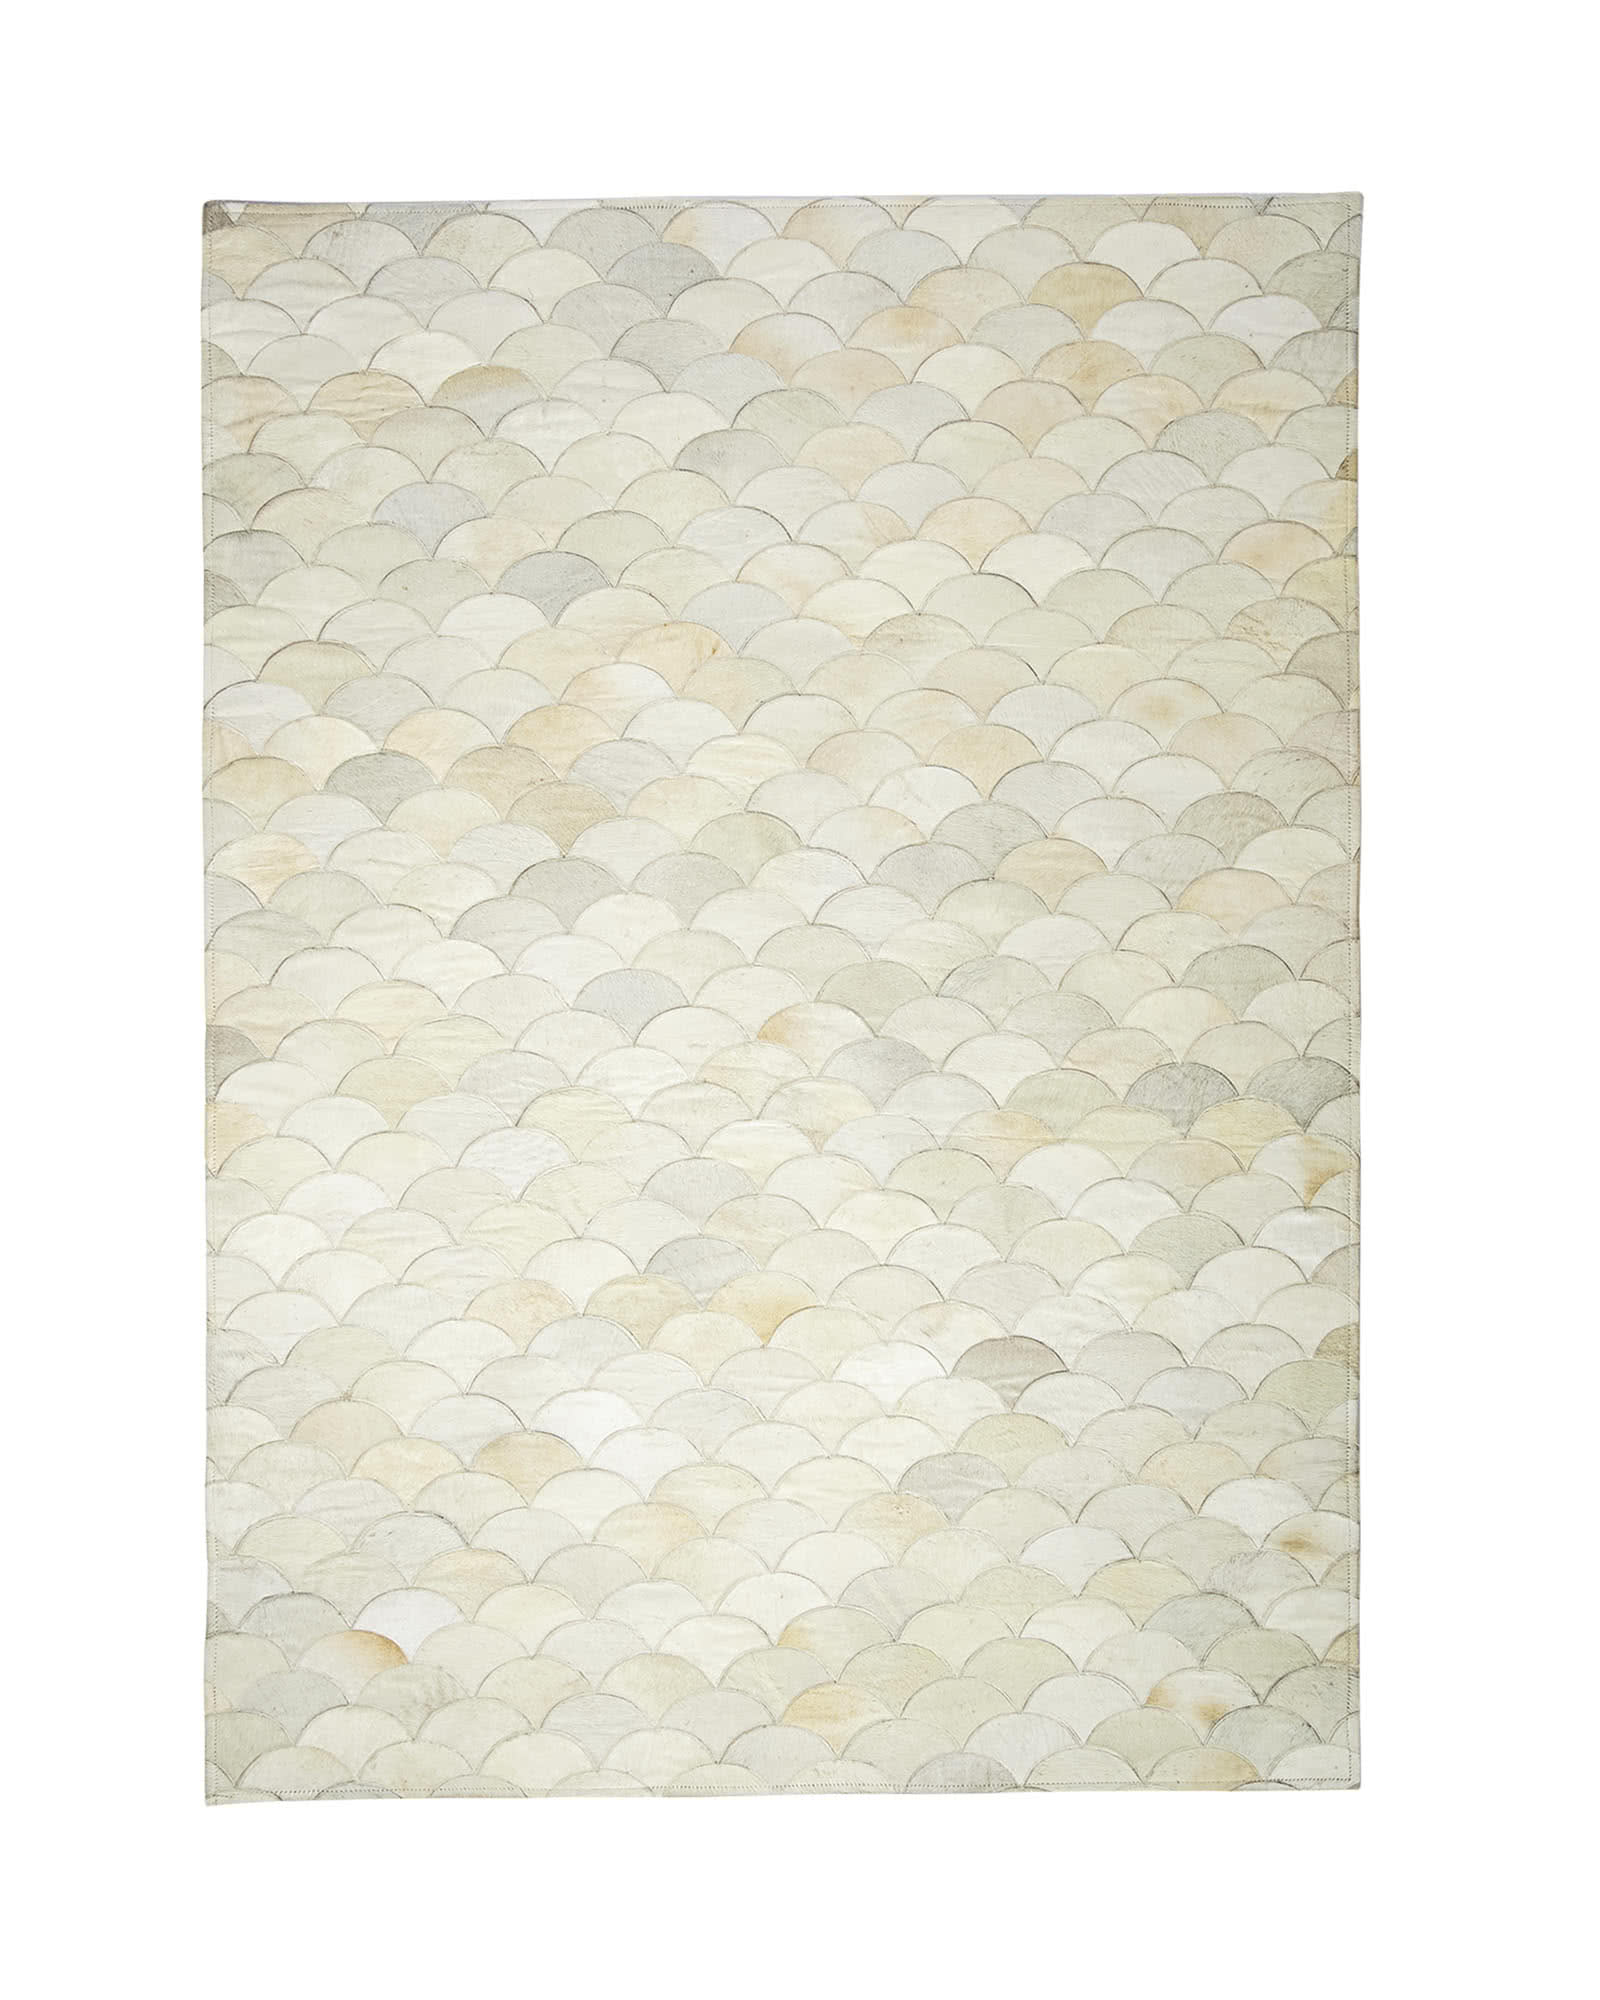 Scalloped Hide Rug Serena Amp Lily